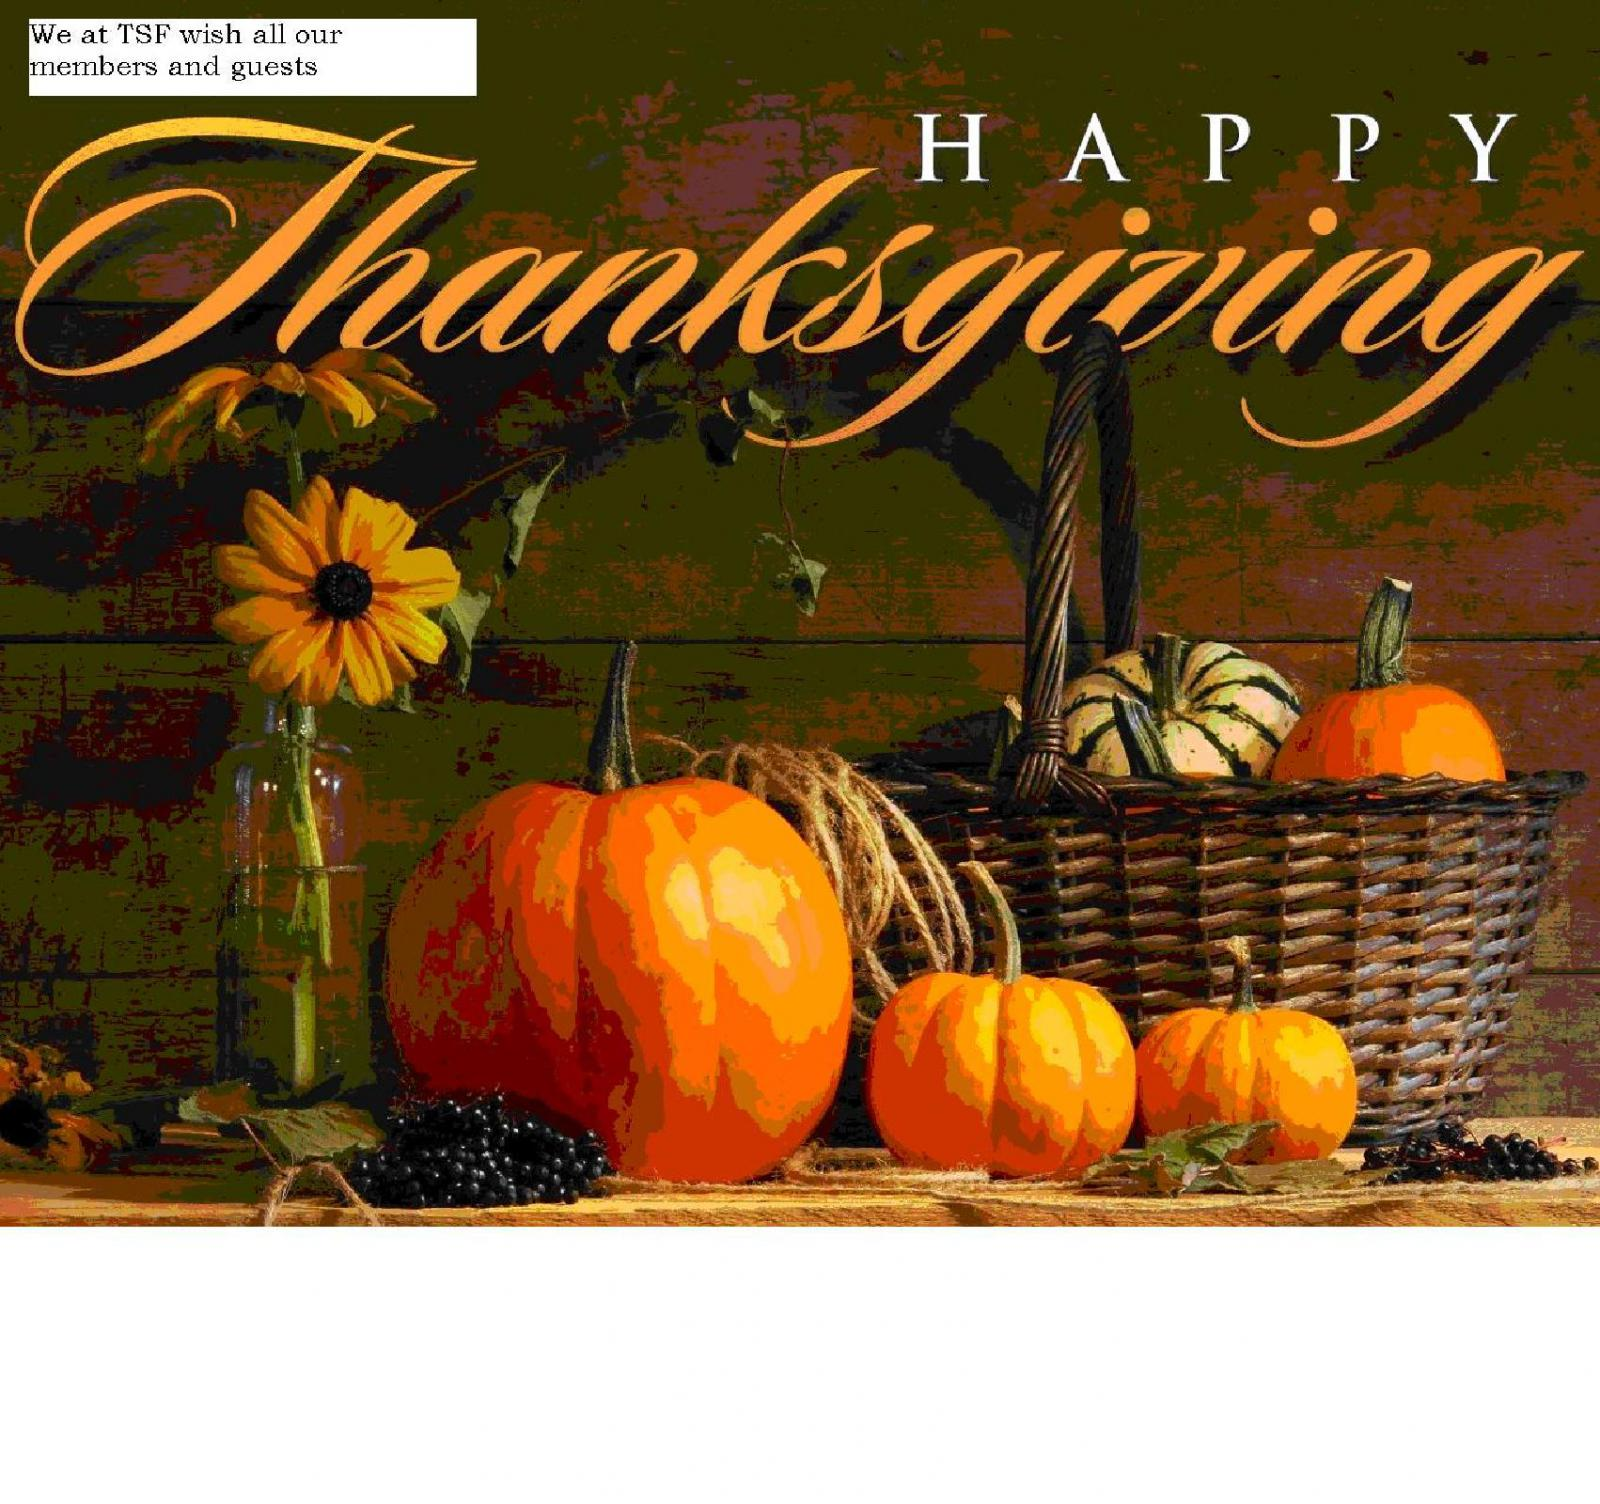 Click image for larger version  Name:Thanksgiving.jpg Views:11 Size:294.4 KB ID:315914